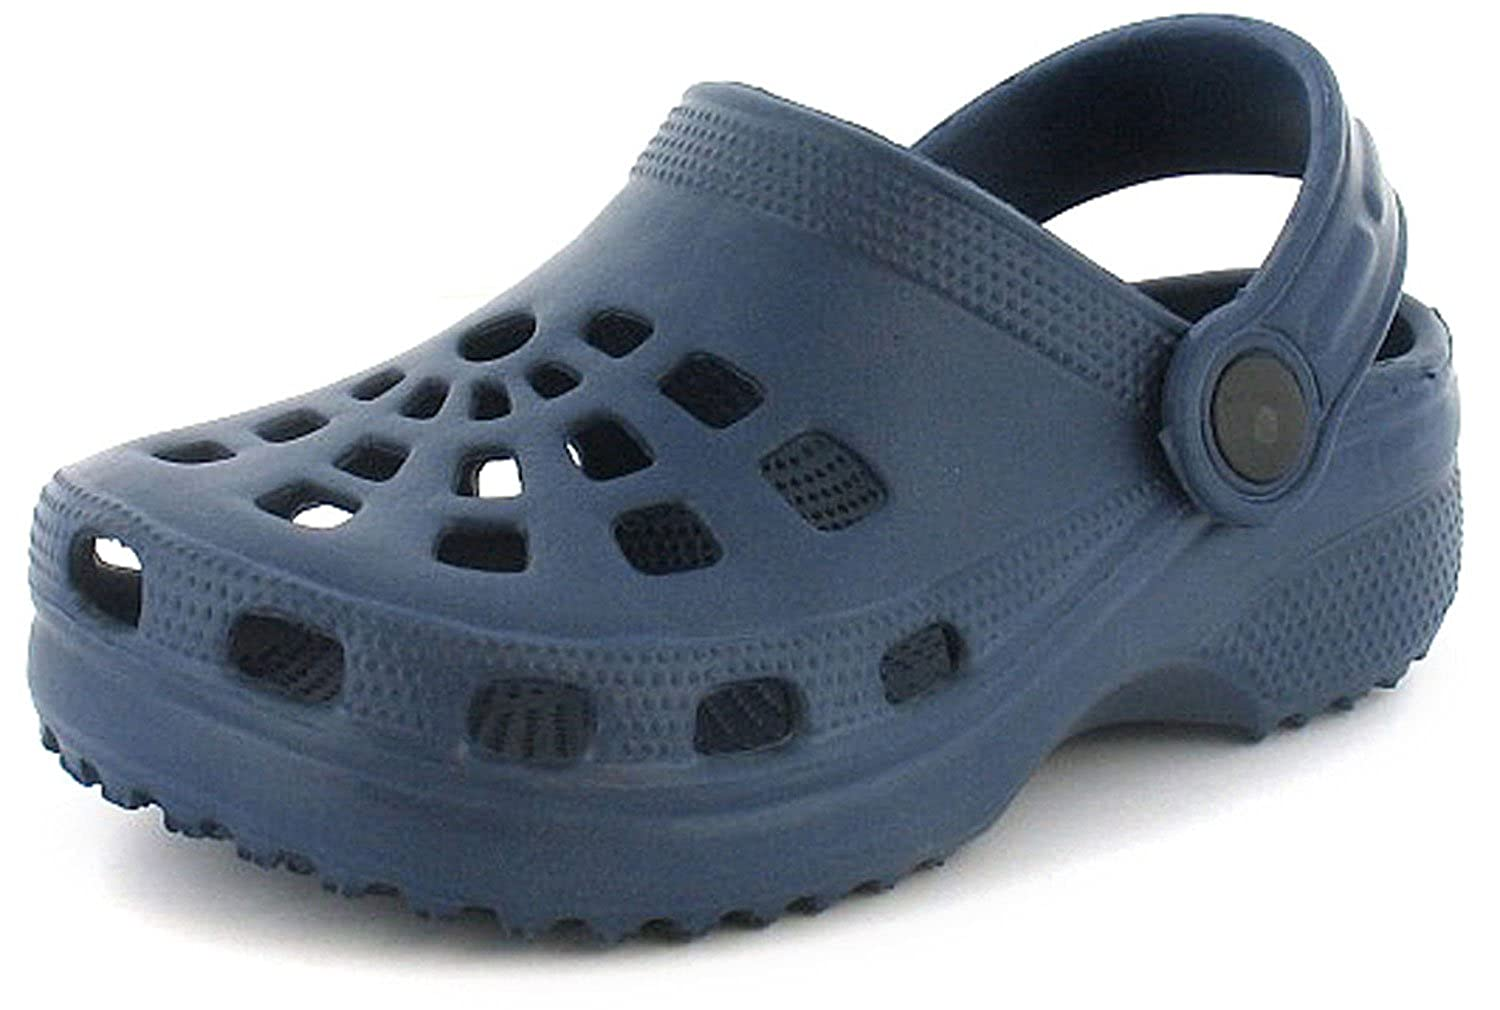 Wynsors New Boys/Childrens Blue Moulded Clog Sandals With Moveable Back Strap - Navy - UK SIZES 4-12